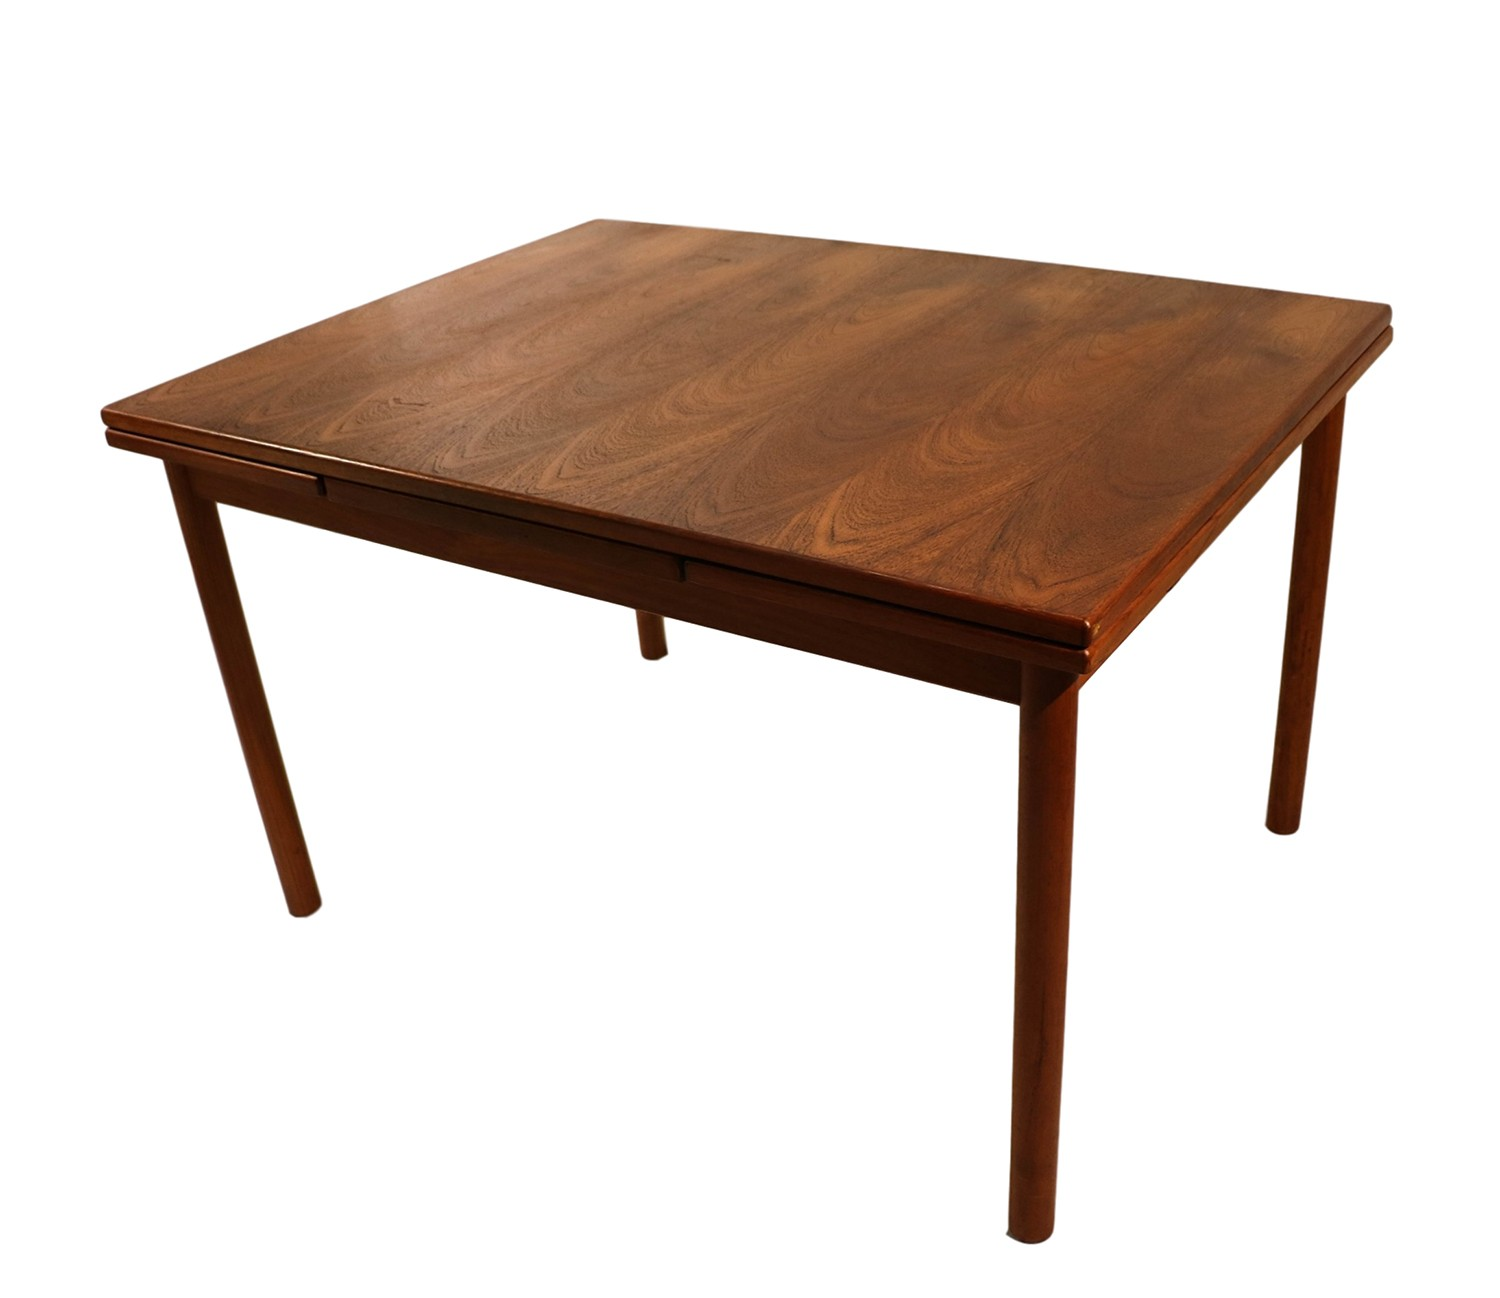 Modern Extending Dining Table Danish Modern Teak Extendable Dining Table